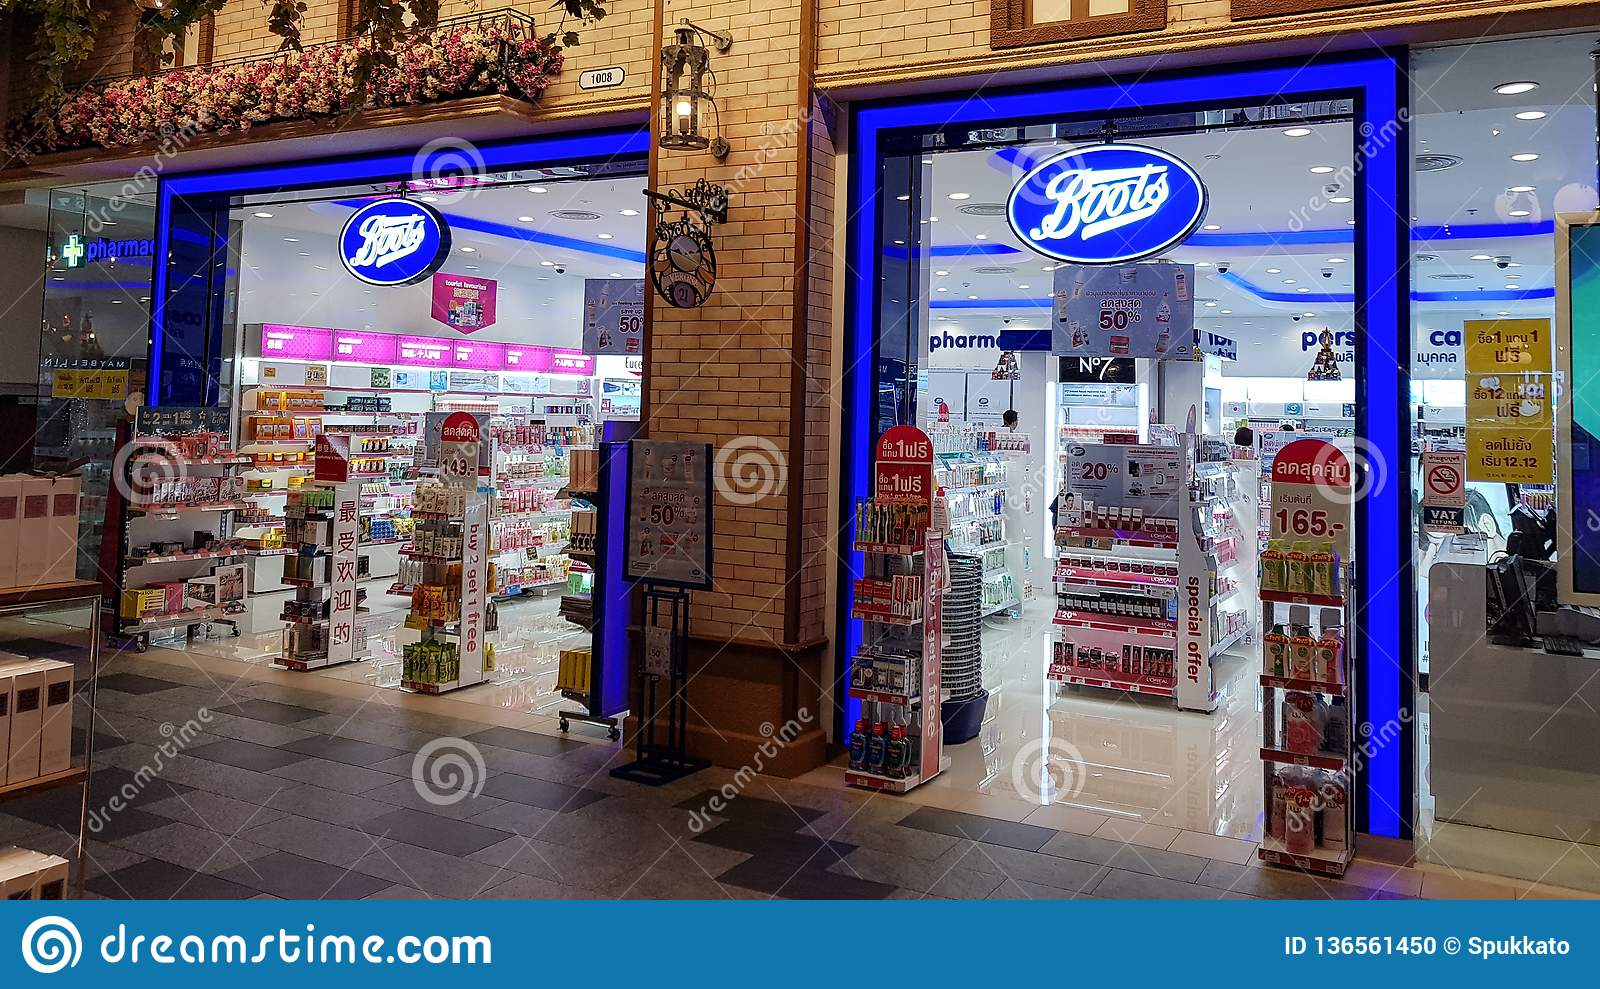 Chon Buri, Thailand - December 21, 2018: Exterior view of Boots pharmacy store, Terminal 21 Pattaya branch. The Boots pharmacy